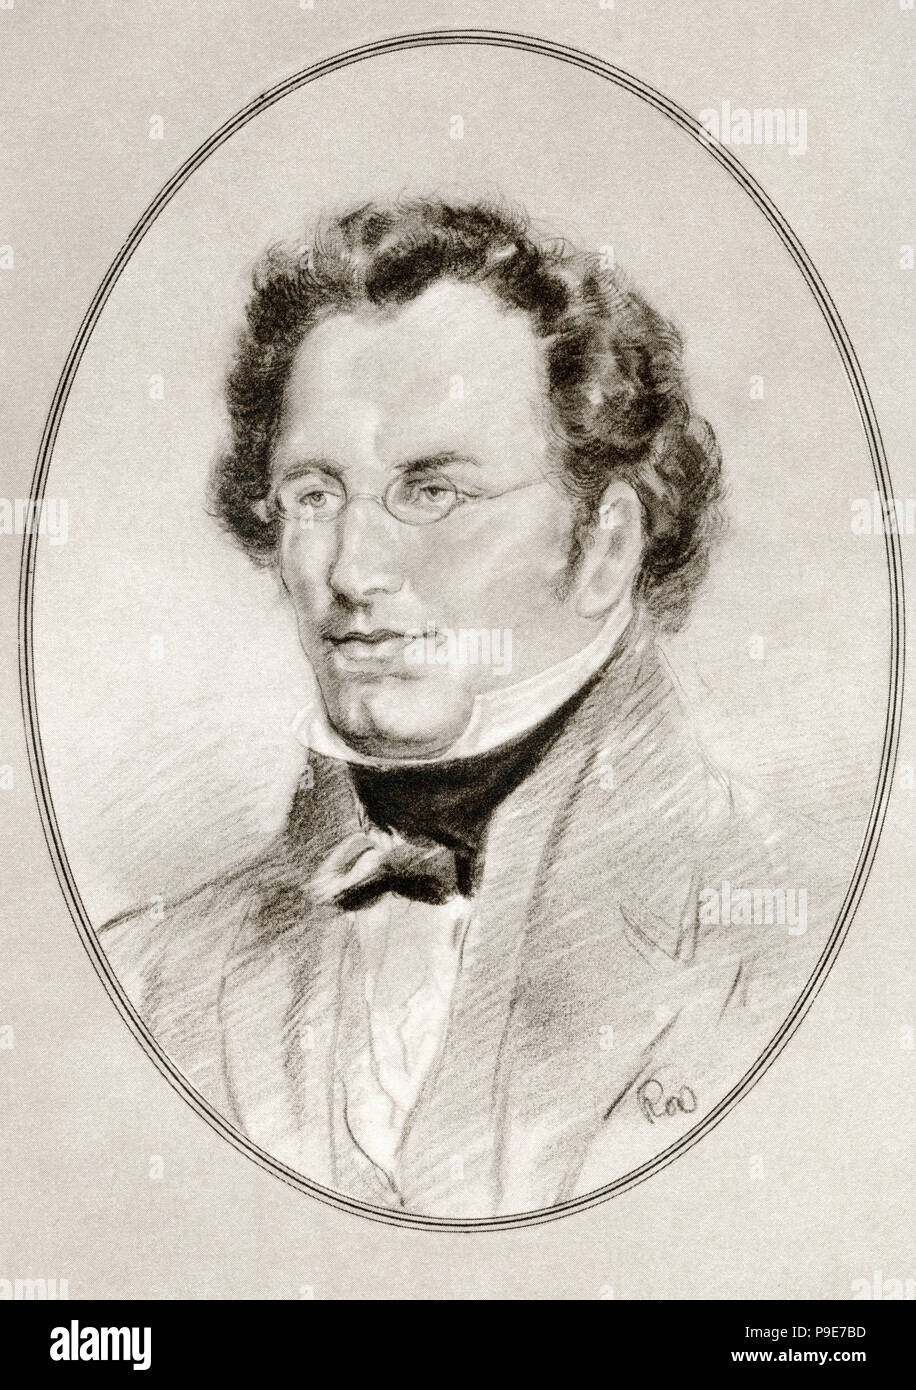 Franz Peter Schubert, 1797 – 1828.  Austrian composer.   Illustration by Gordon Ross, American artist and illustrator (1873-1946), from Living Biographies of Great Composers. - Stock Image